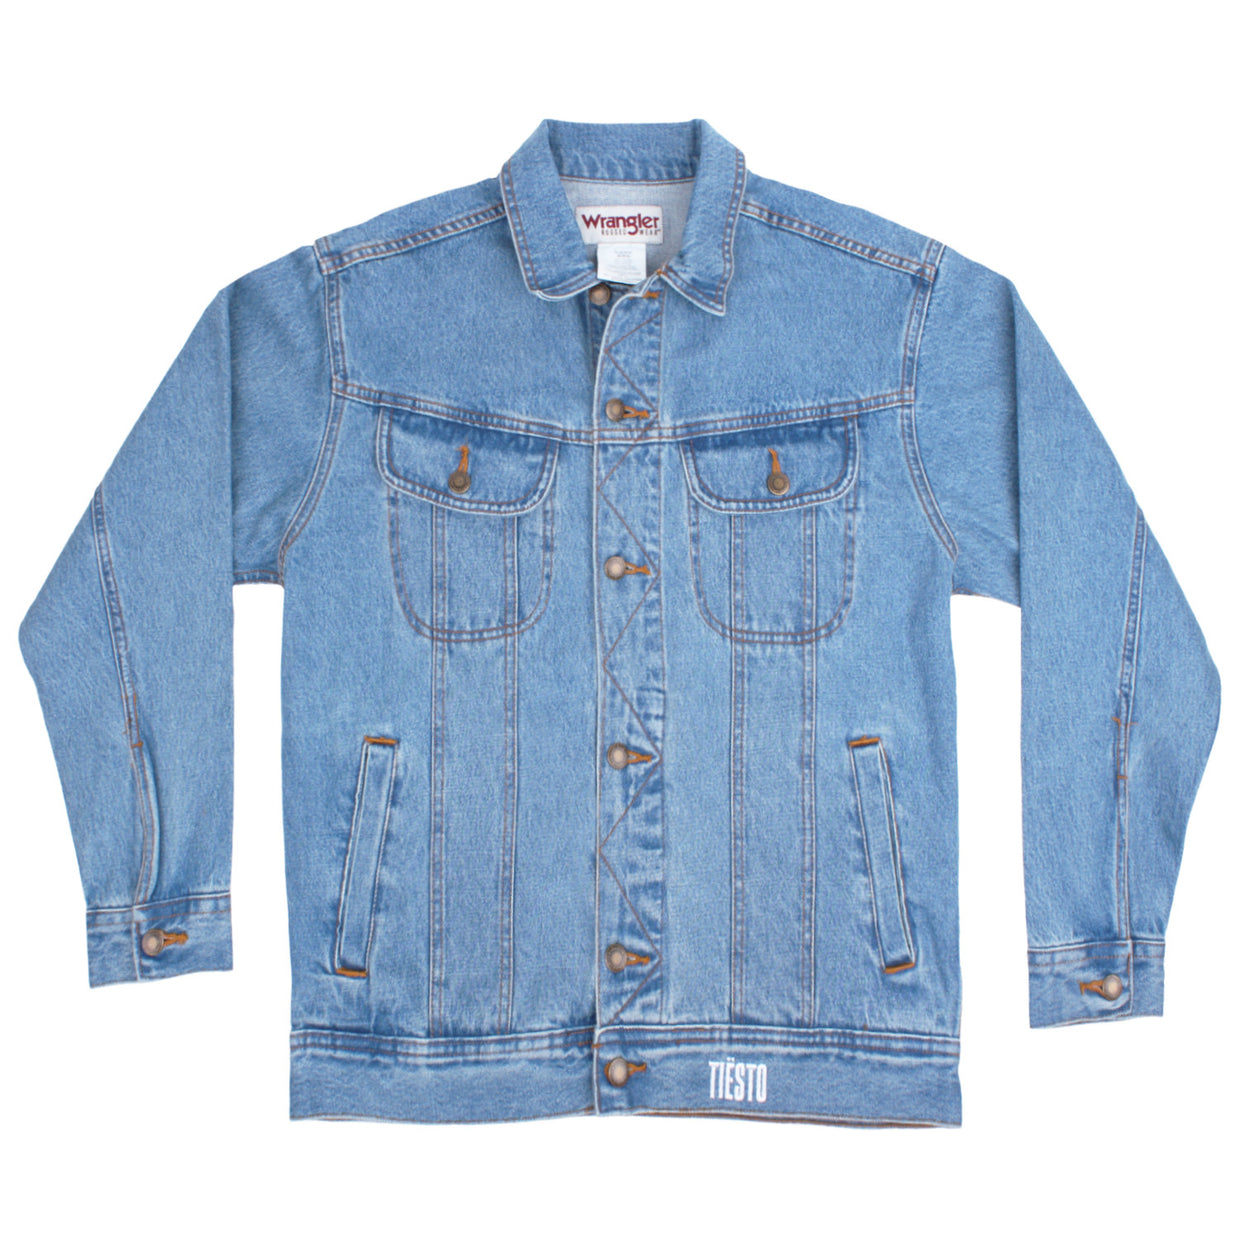 'Harder' Denim Jacket